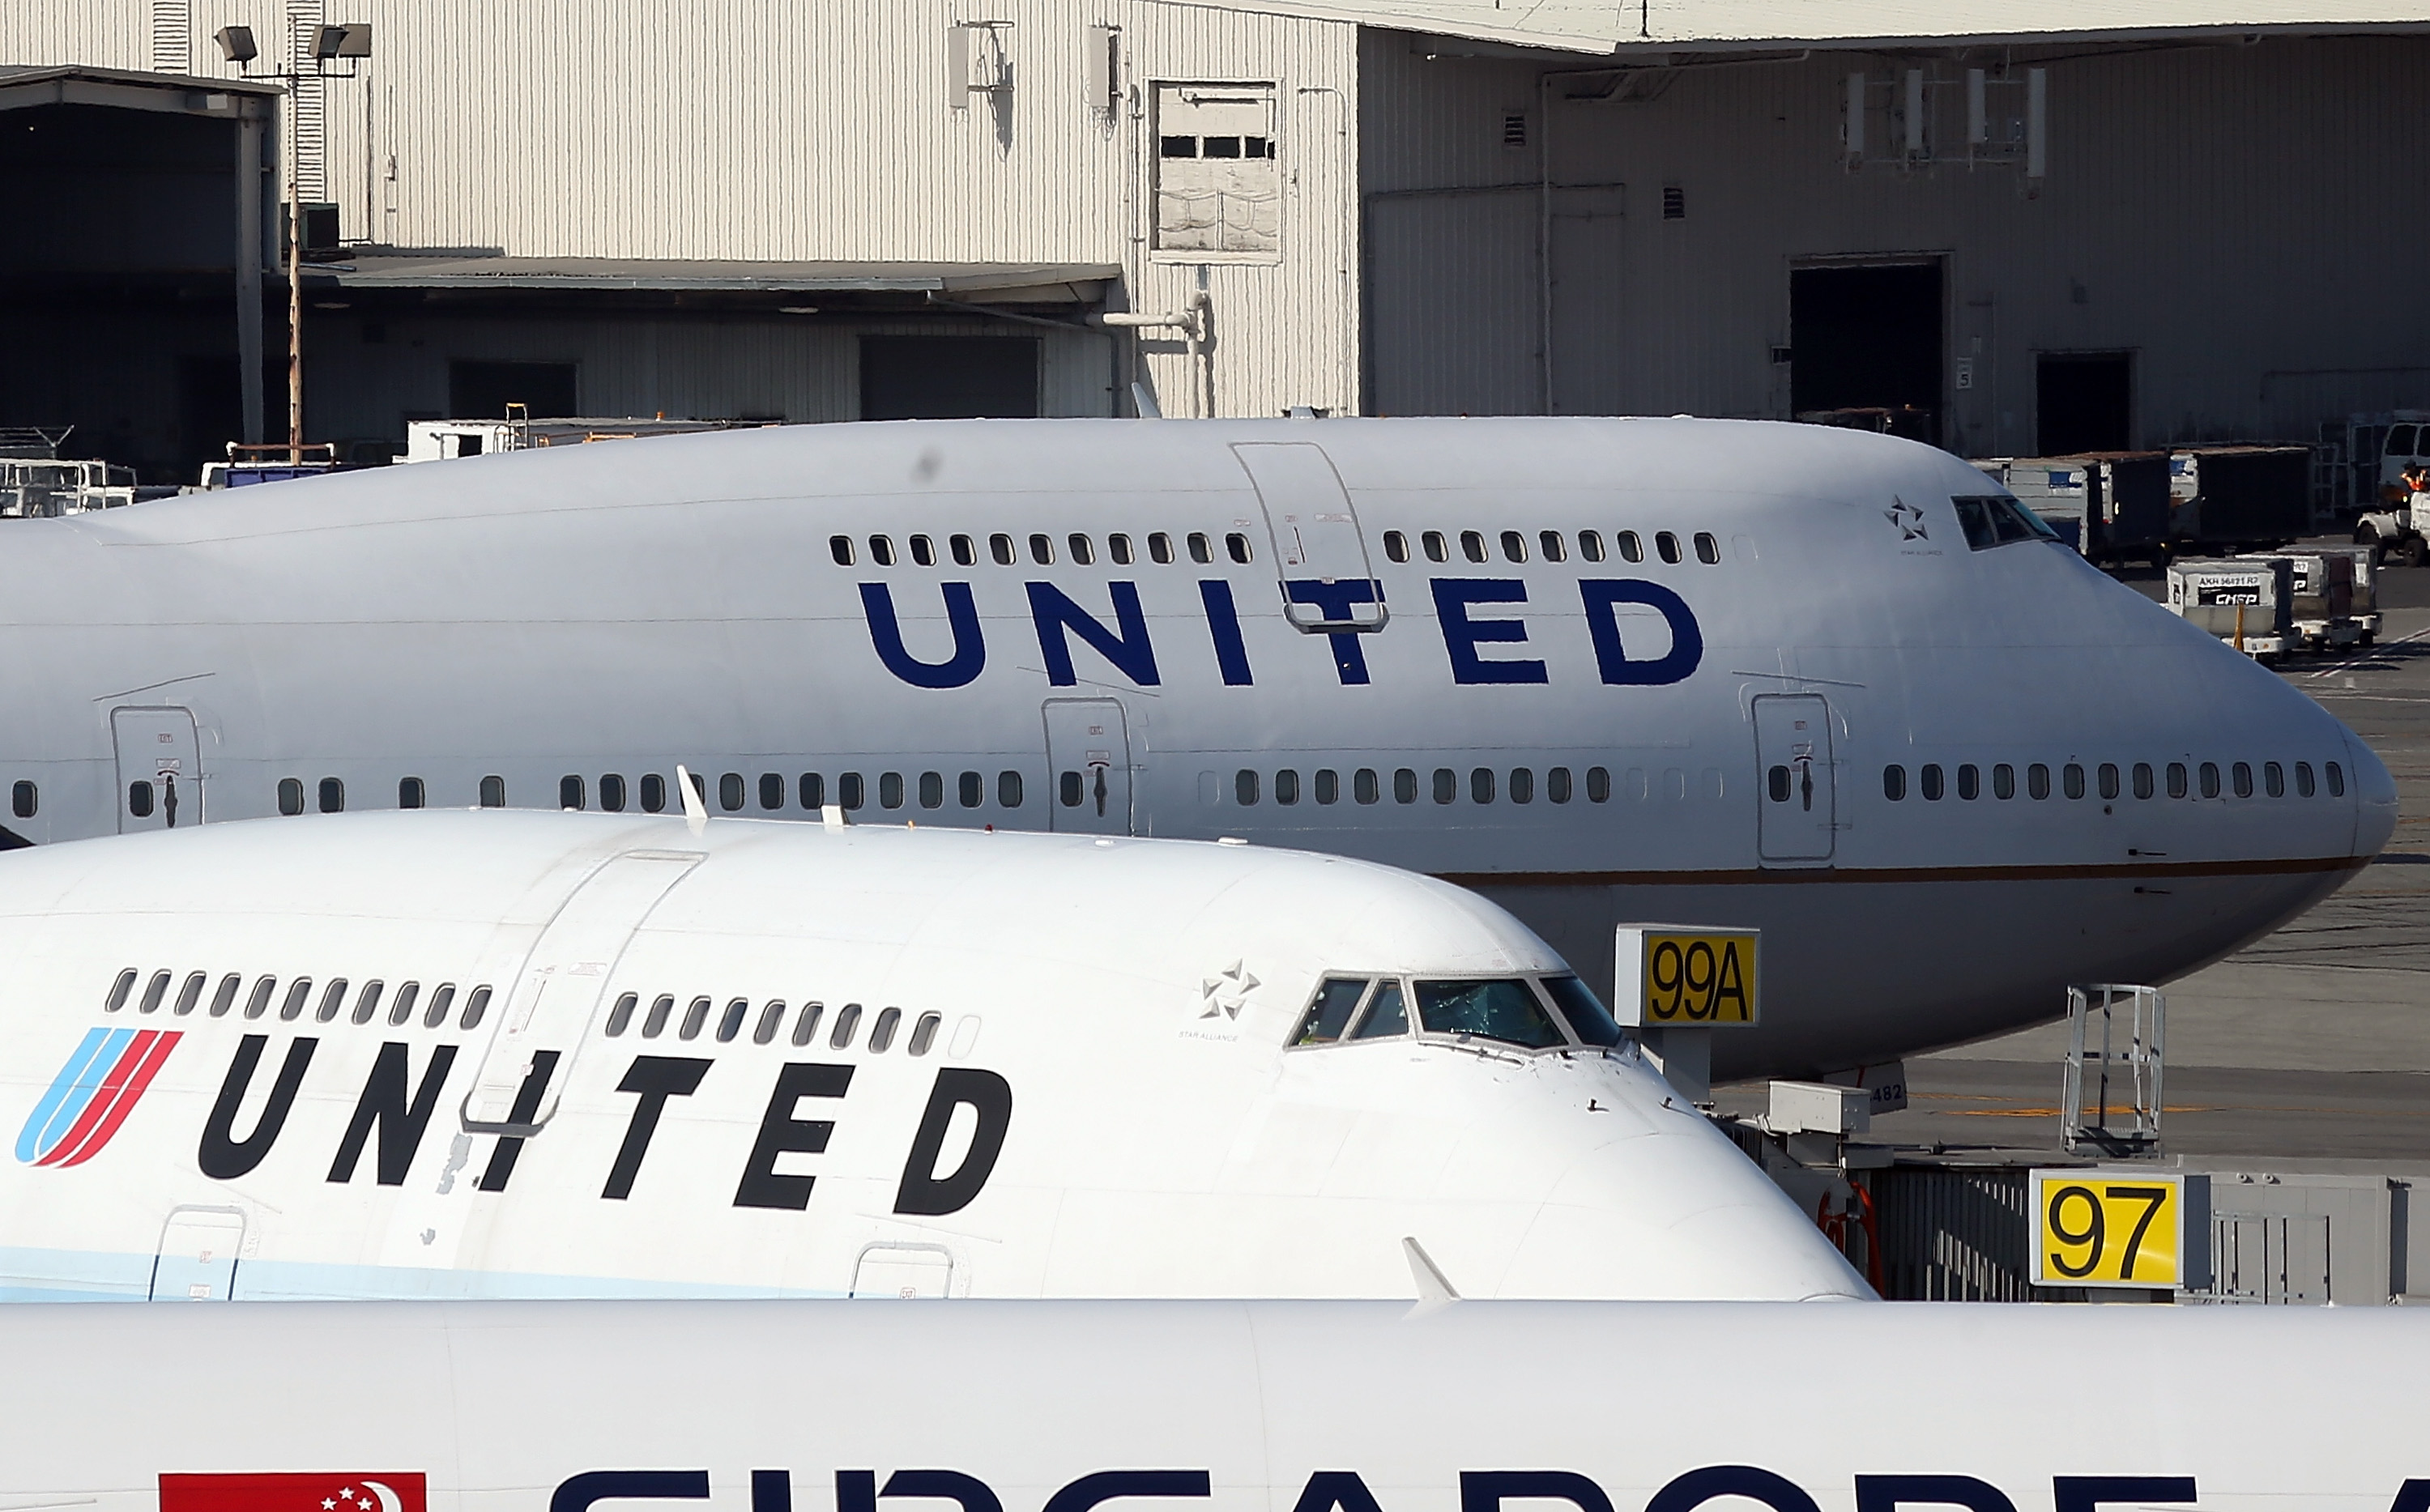 United Airlines planes sit on the tarmac at San Francisco International Airport on January 23, 2014 in San Francisco, California.